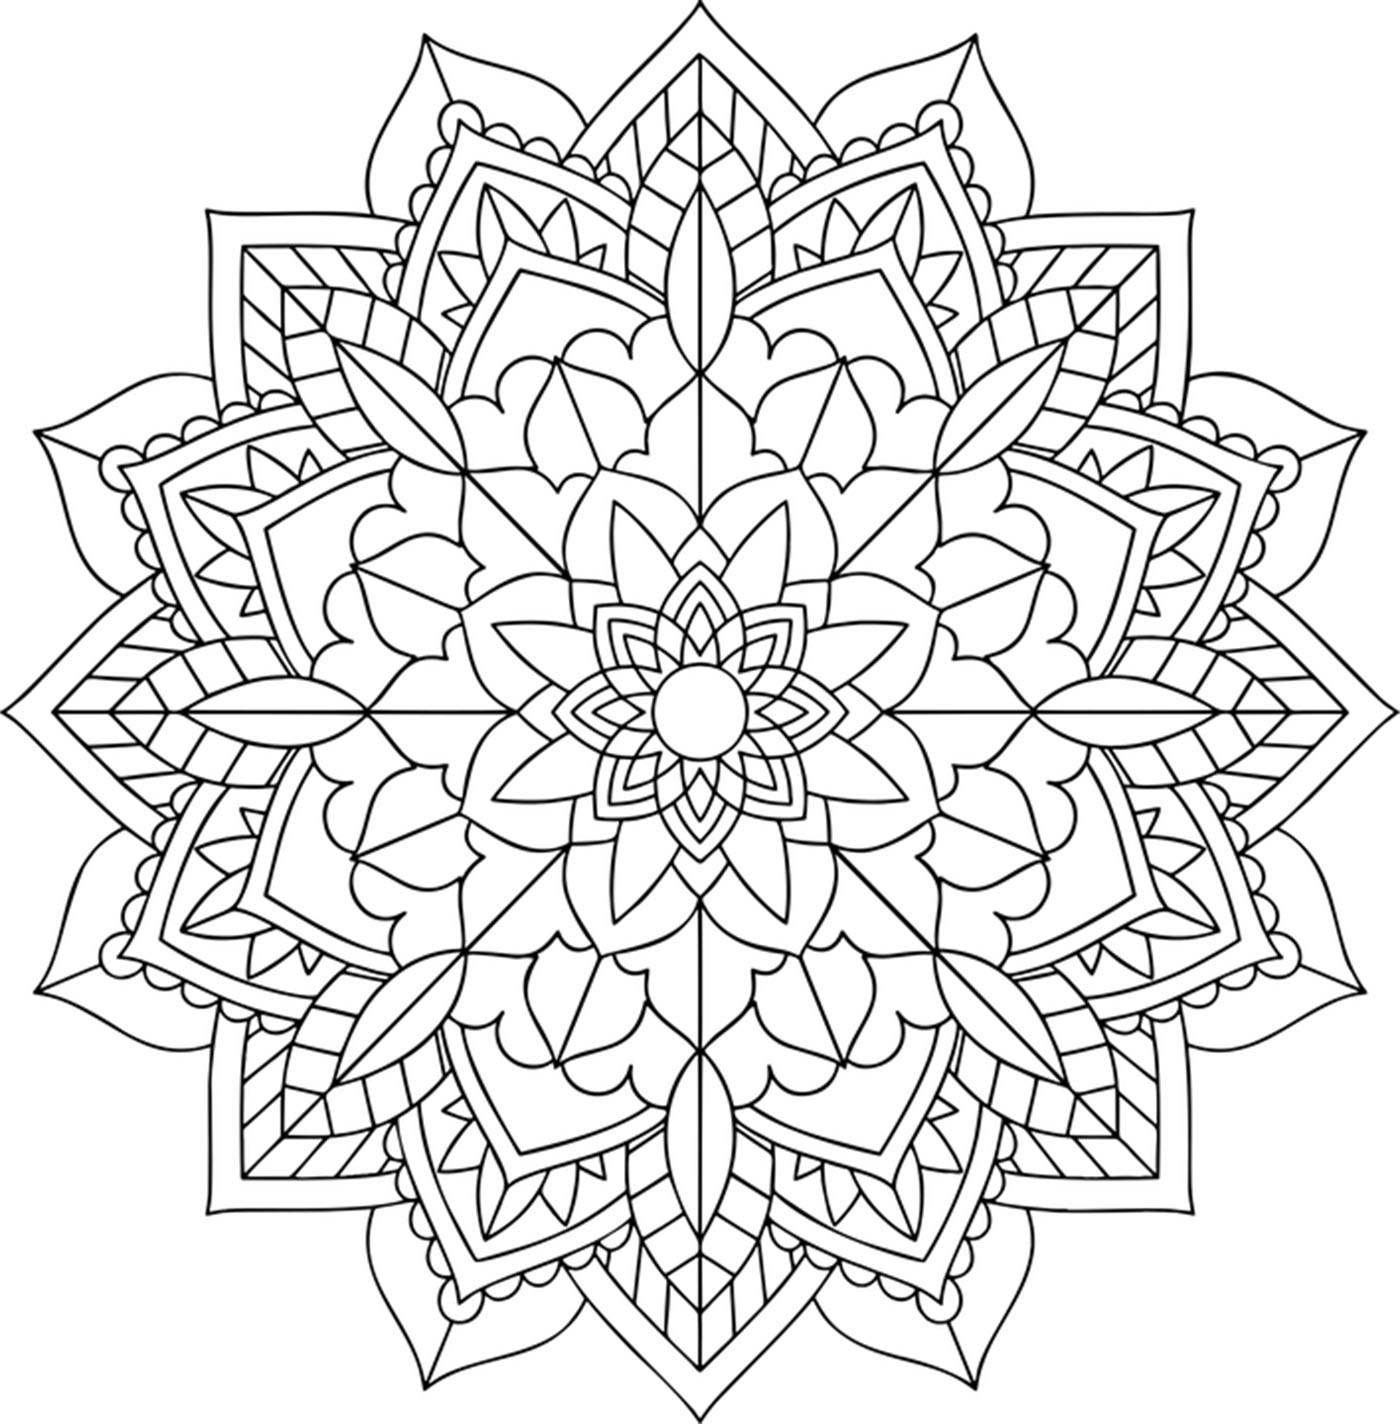 printable mandalas to color mandala coloring pages for kids to download and print for free color printable mandalas to